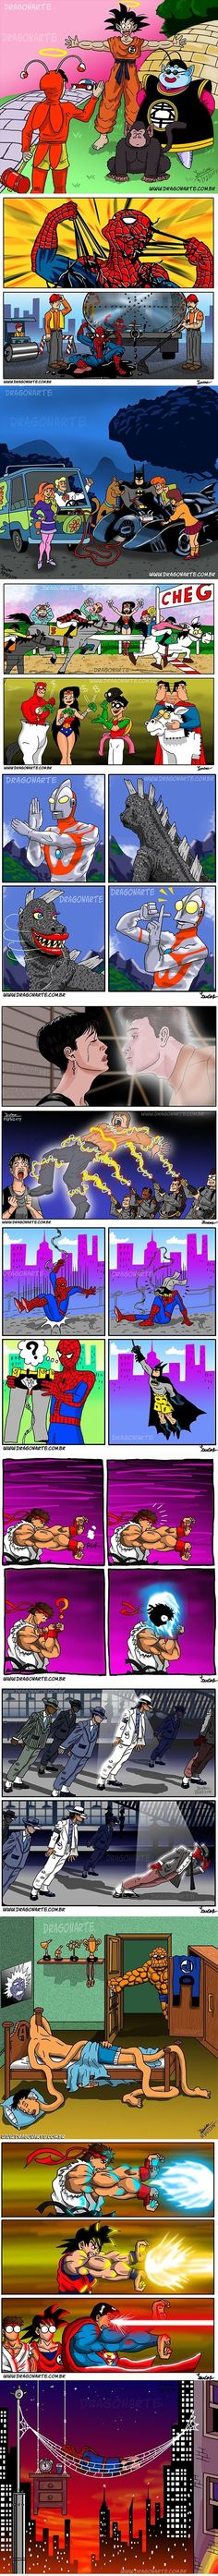 Epic and funny Marvel Vs, Marvel Dc Comics, Anime Comics, Funny Images, Funny Pictures, Univers Dc, Geek Culture, Funny Comics, Geeks